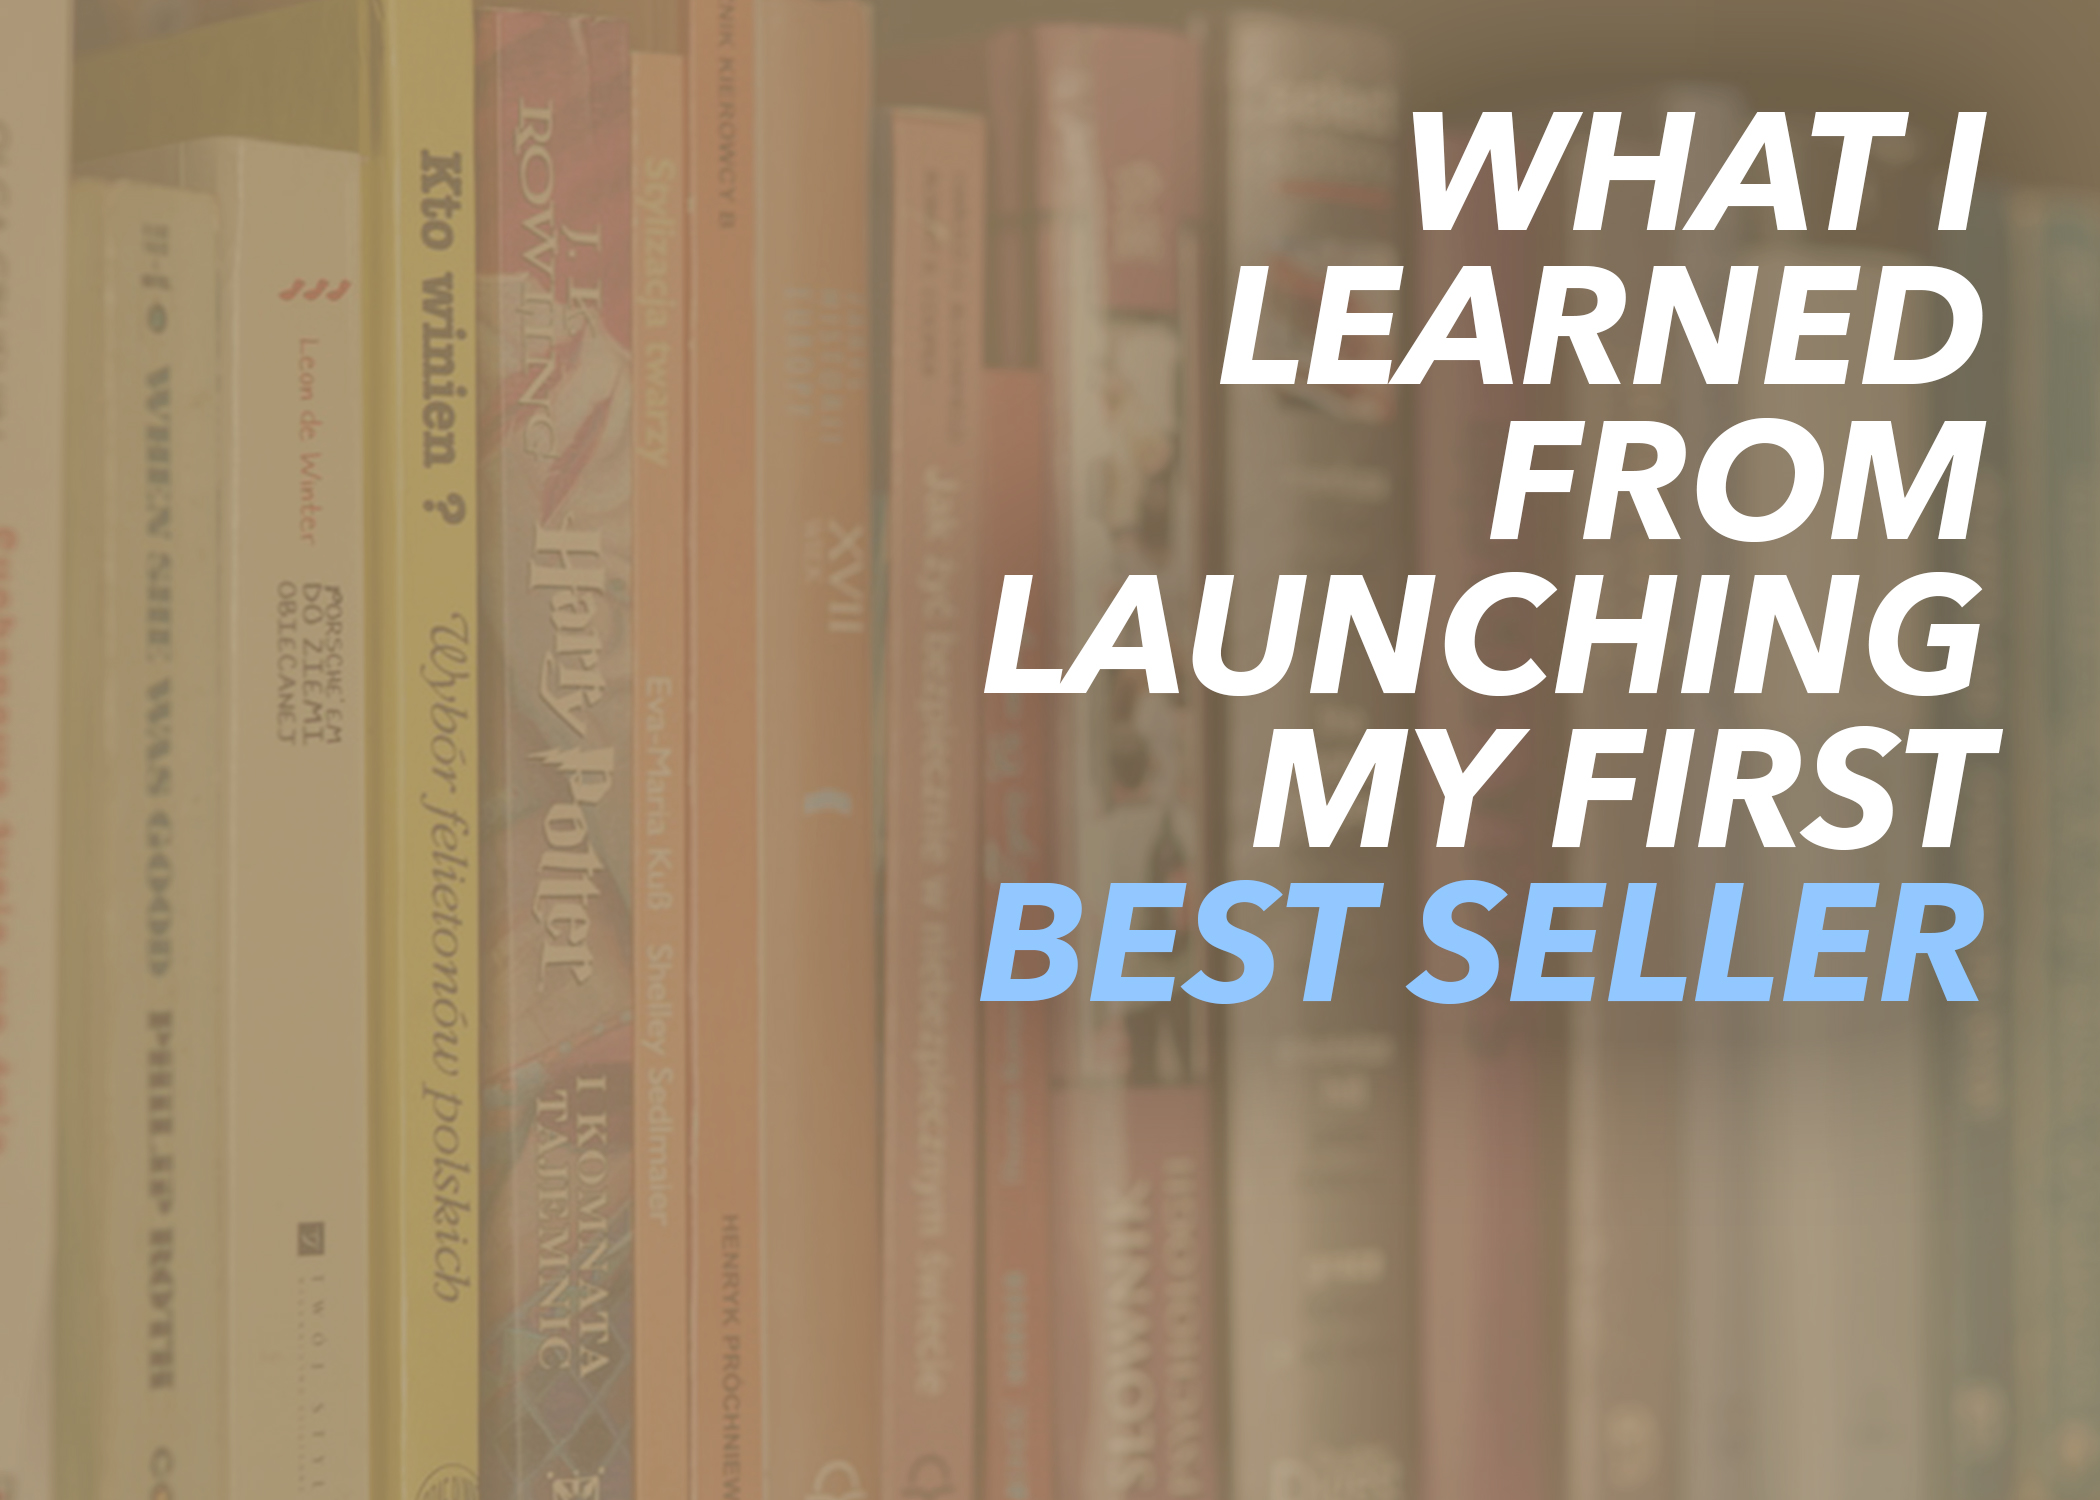 What I Learned from Launching My First Best Seller